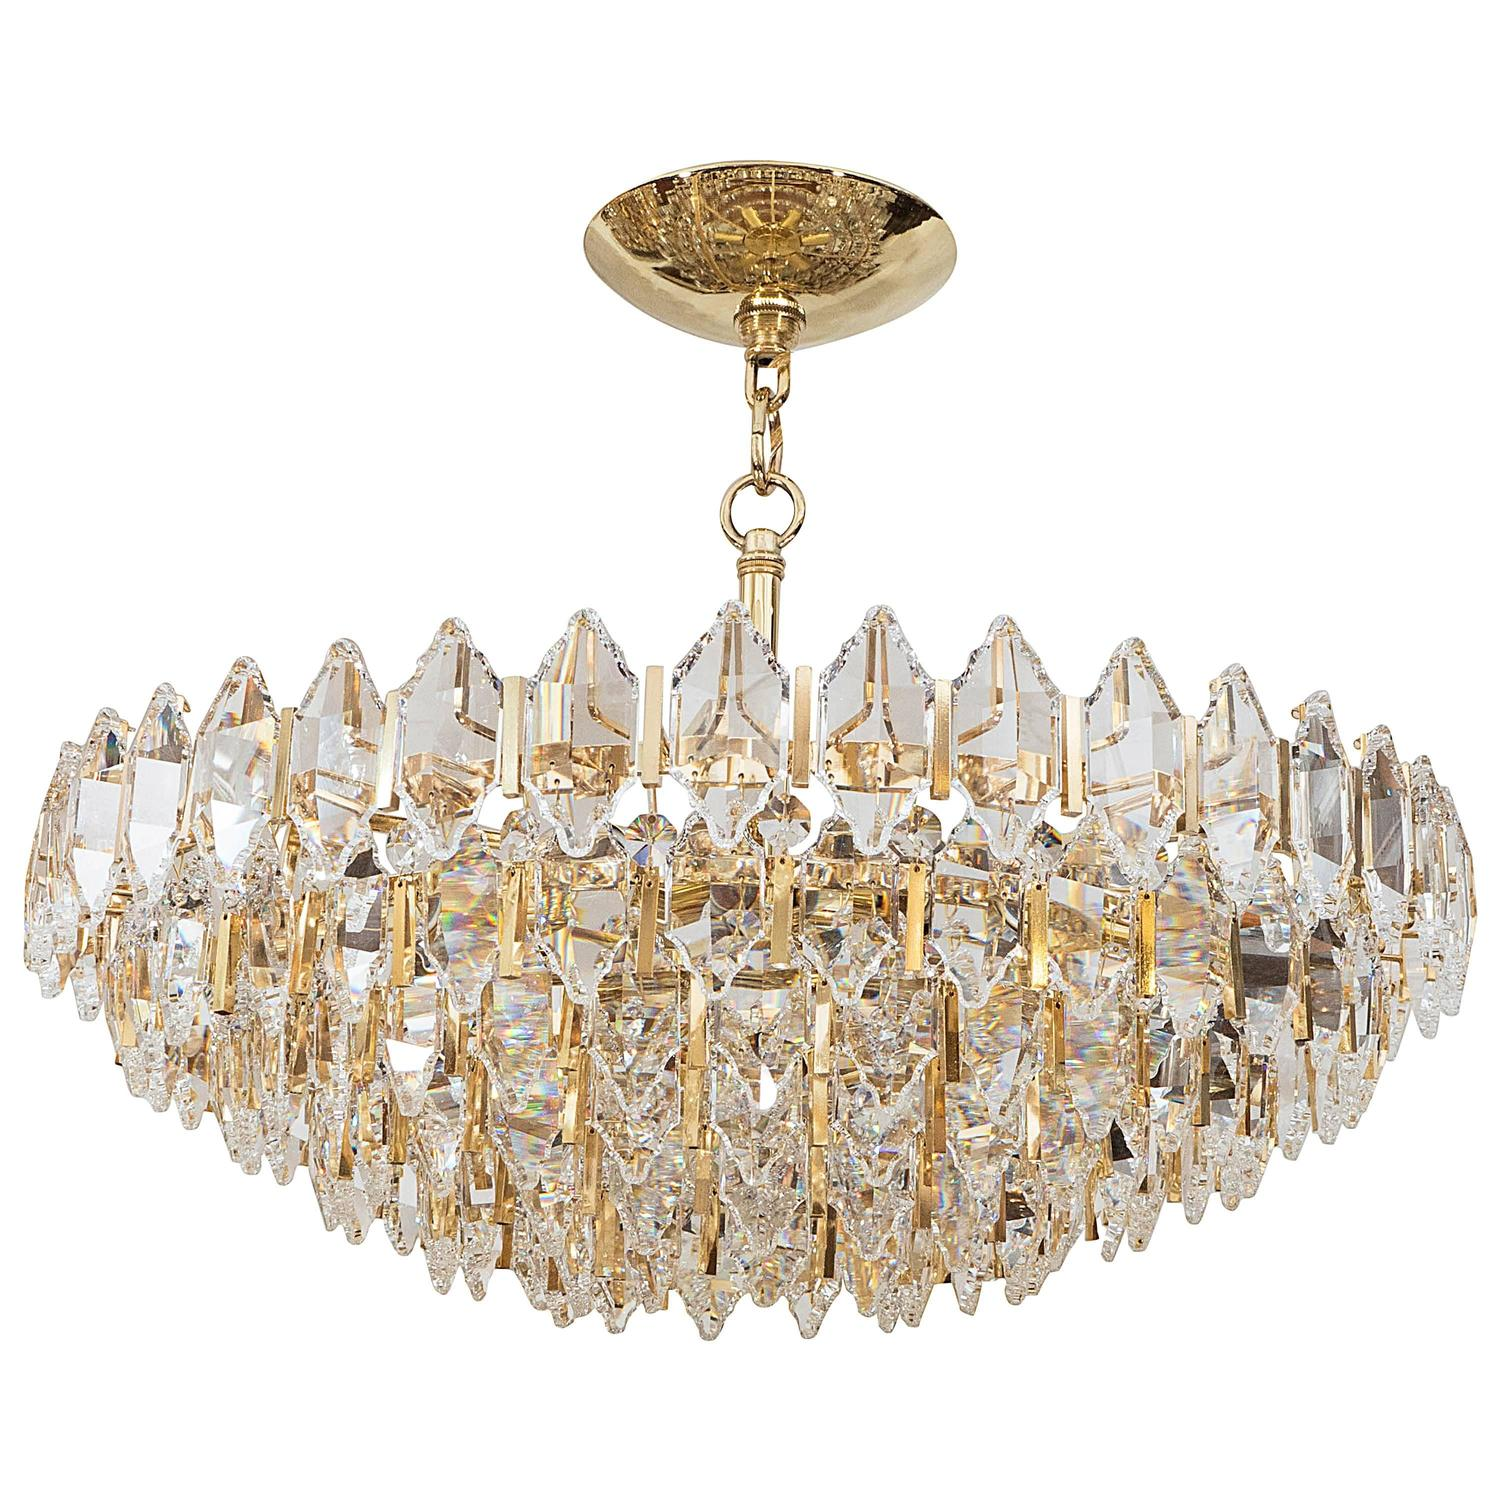 Tiered Brass and Crystal Chandelier at 1stdibs